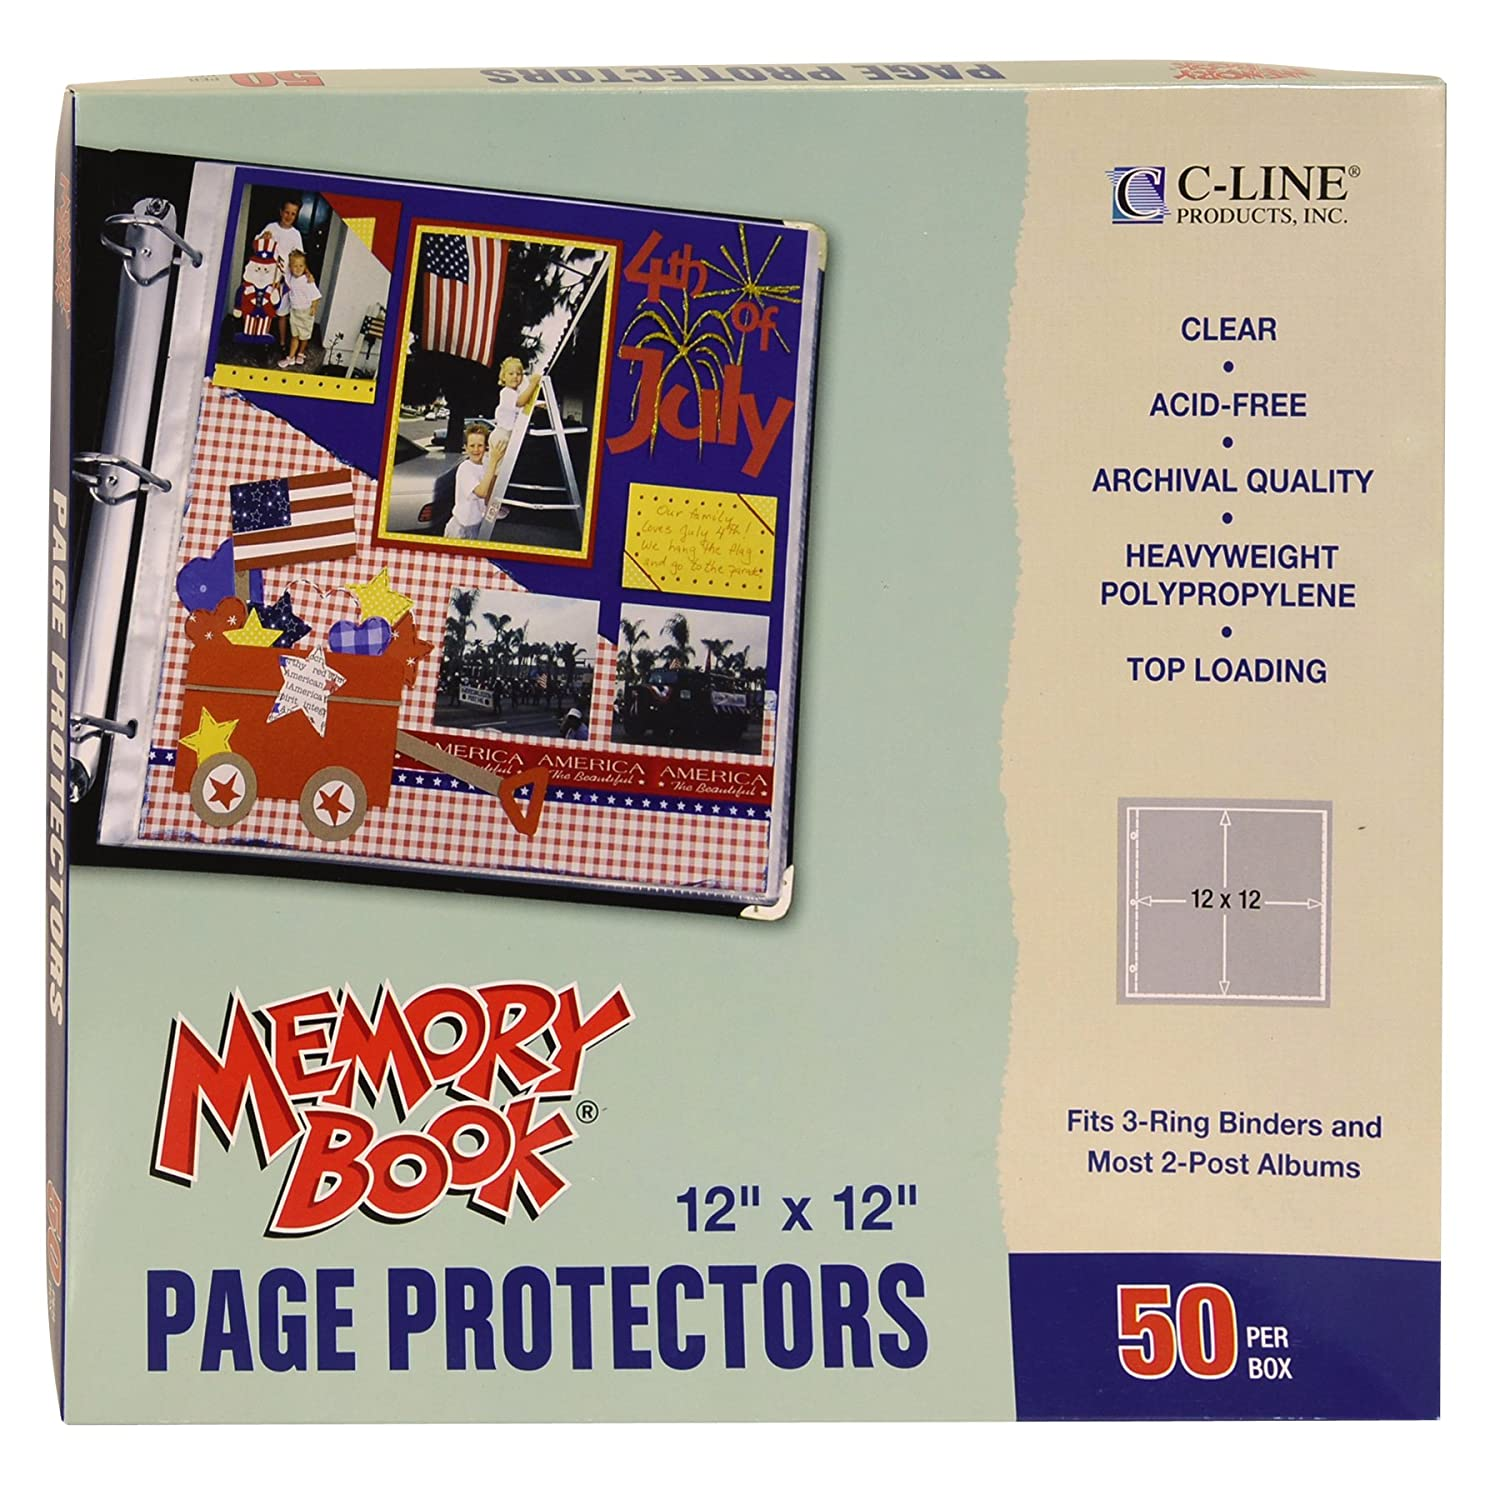 How to scrapbook without page protectors - Amazon Com C Line Memory Book 12 X 12 Inch Scrapbook Page Protectors Clear Poly Top Load 50 Pages Per Box 62227 Kitchen Dining